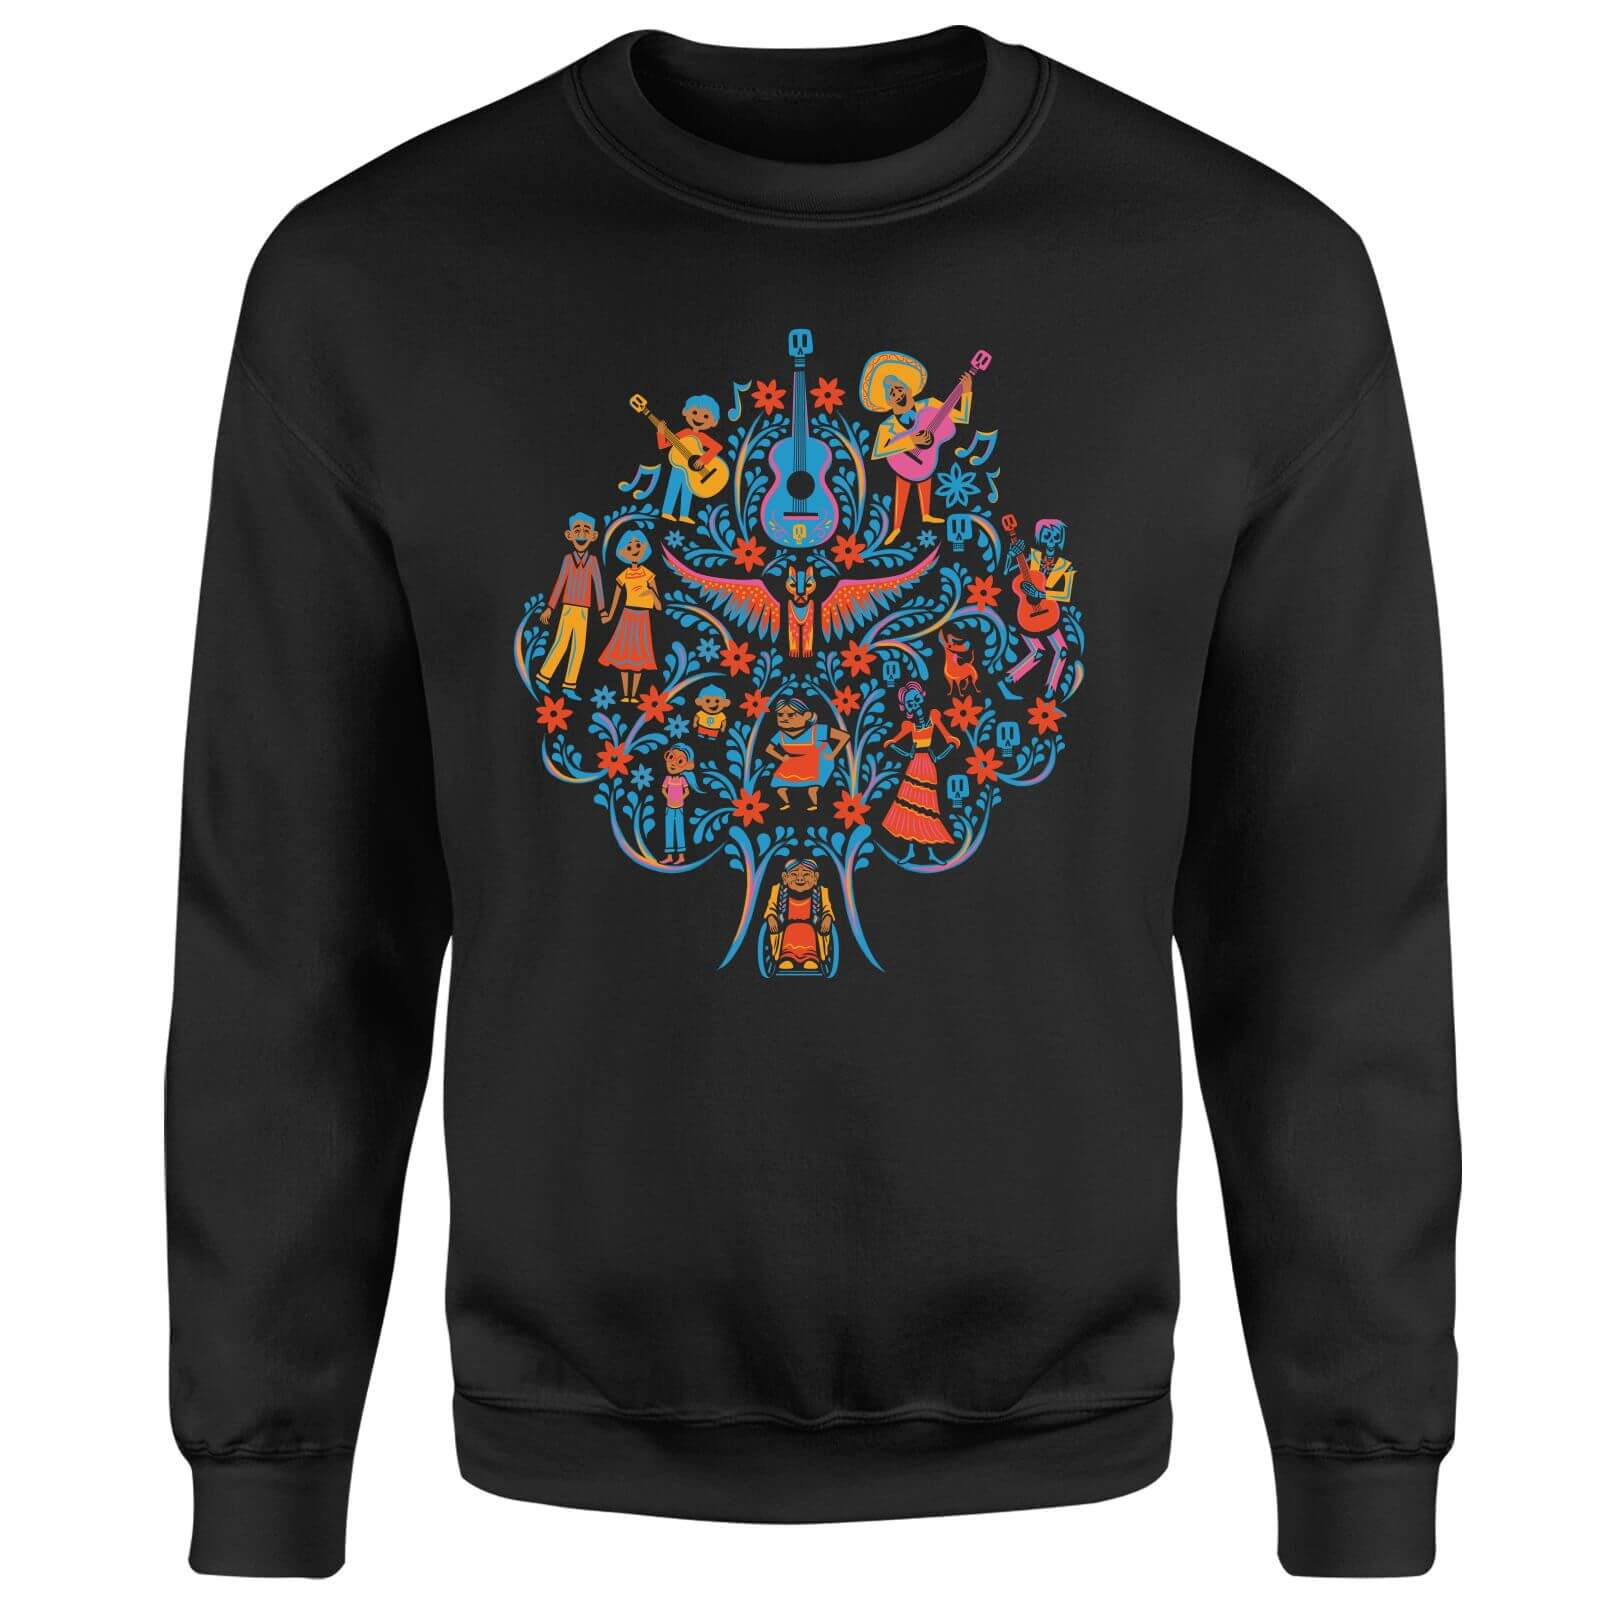 Coco Tree Pattern Sweatshirt - Black